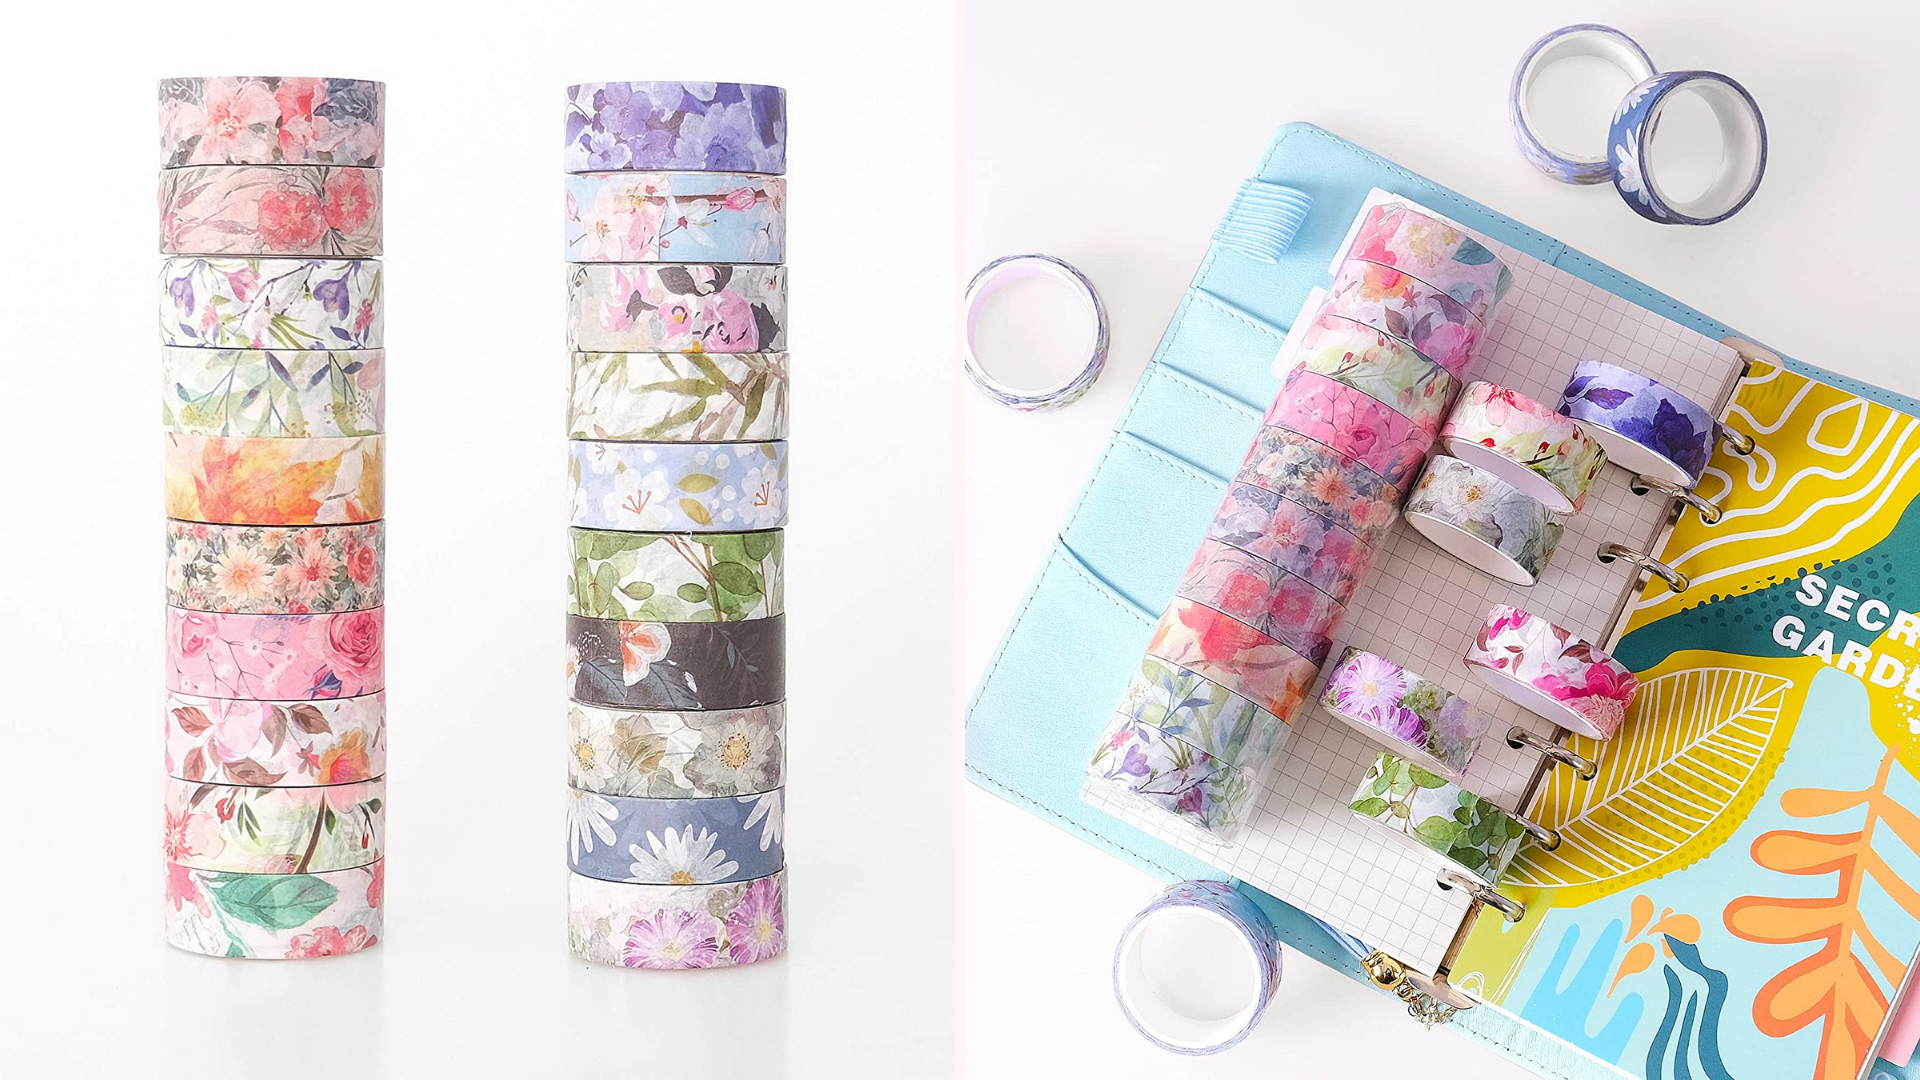 Multiple rolls of washi tape sits on top of a colorful notebook.